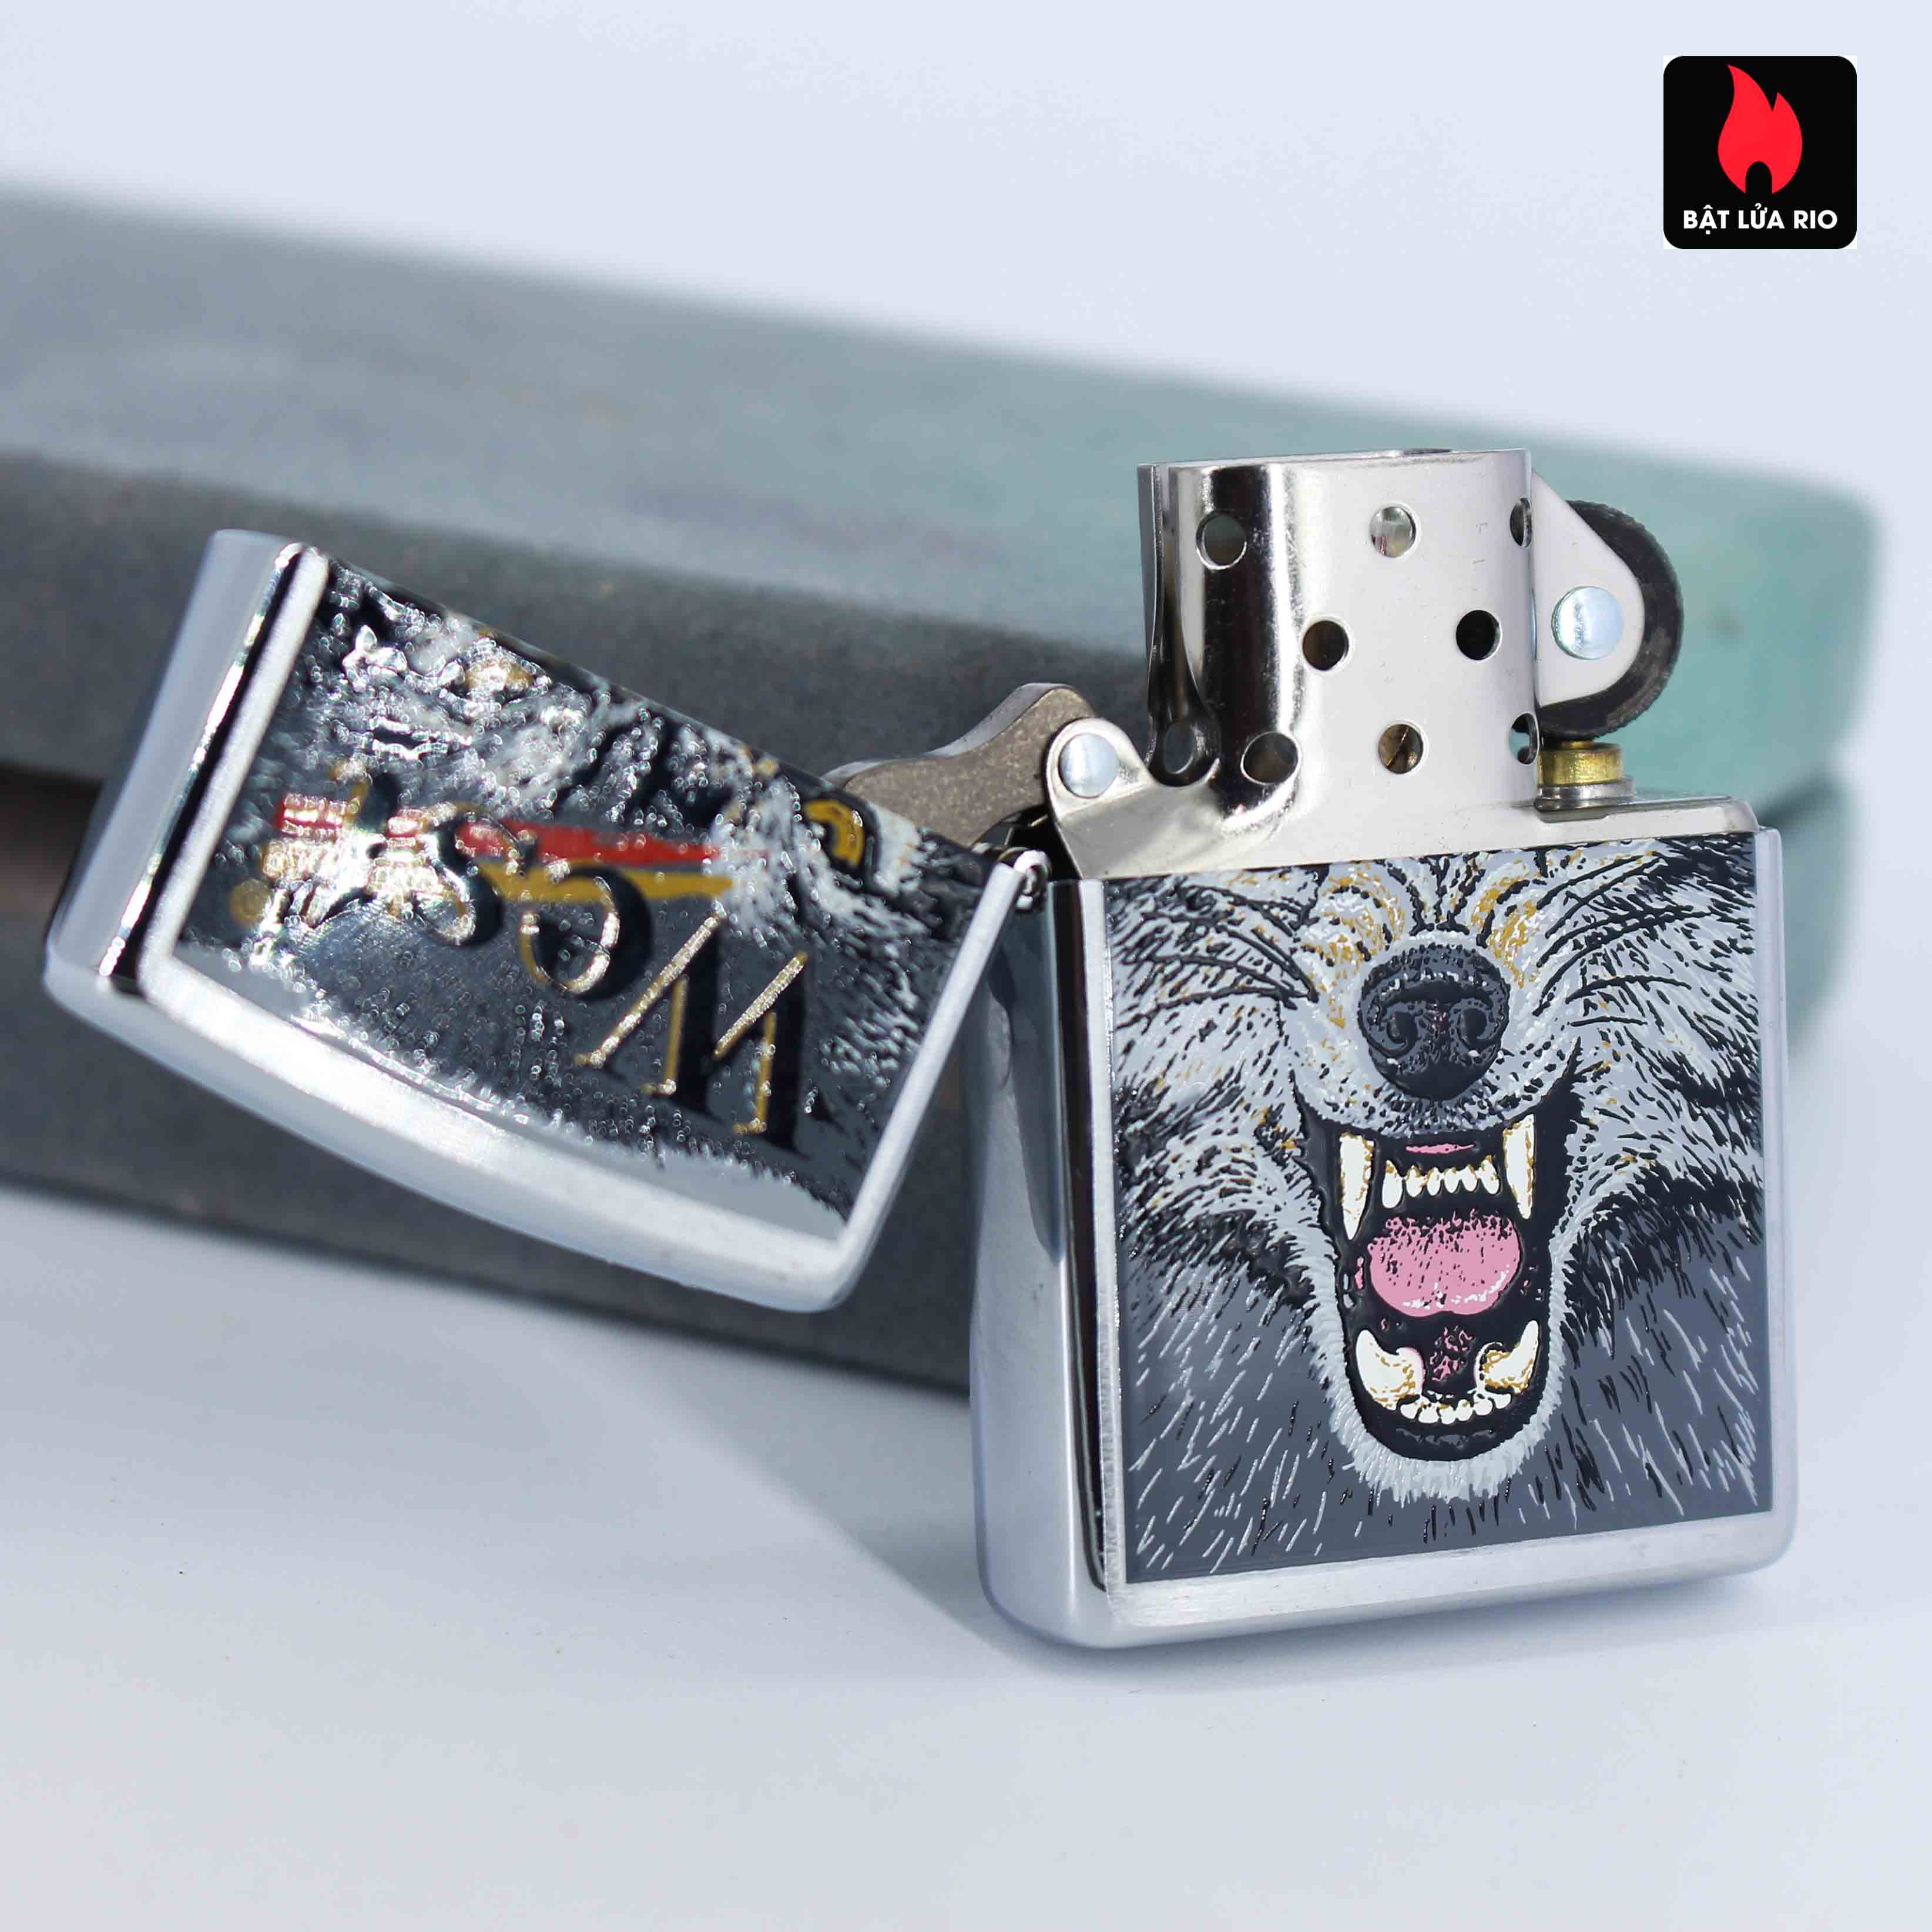 Zippo 2001 - Wild Lighters Edition - Limited Edition /1000 15